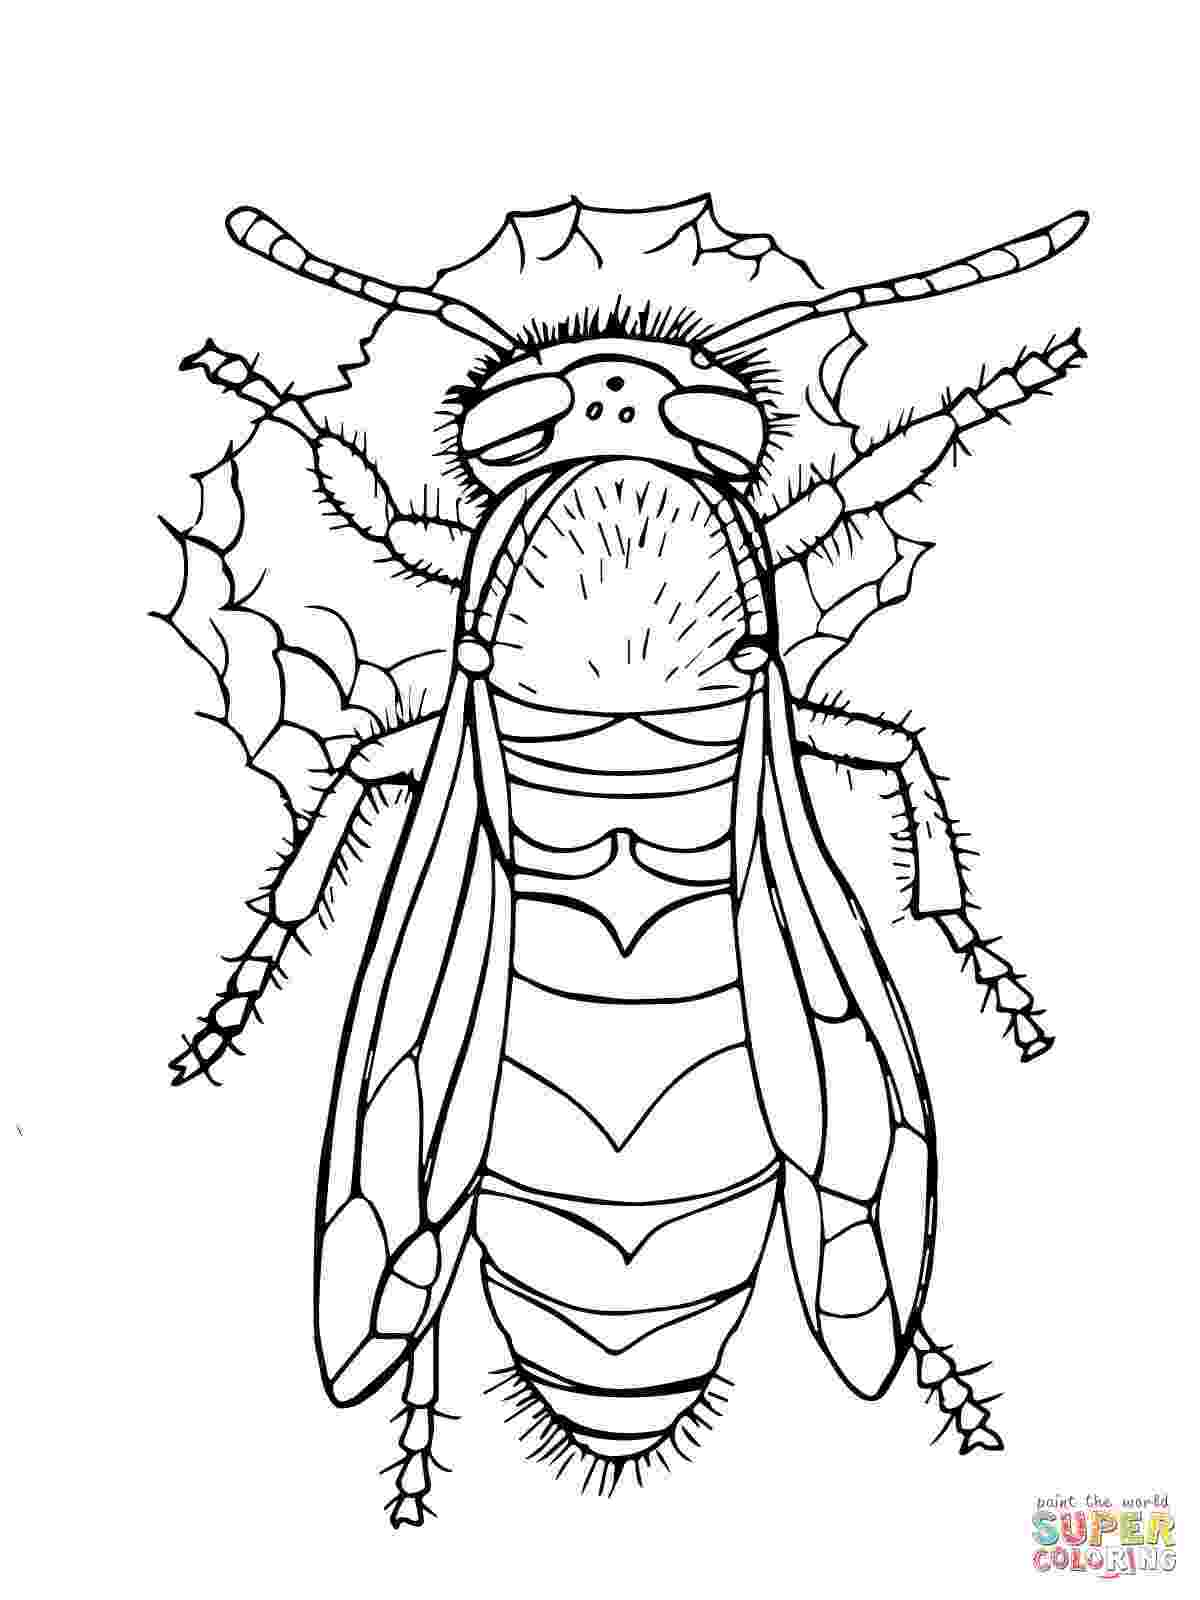 yellow jacket coloring page yellow jacket audio stories for kids free coloring jacket yellow coloring page